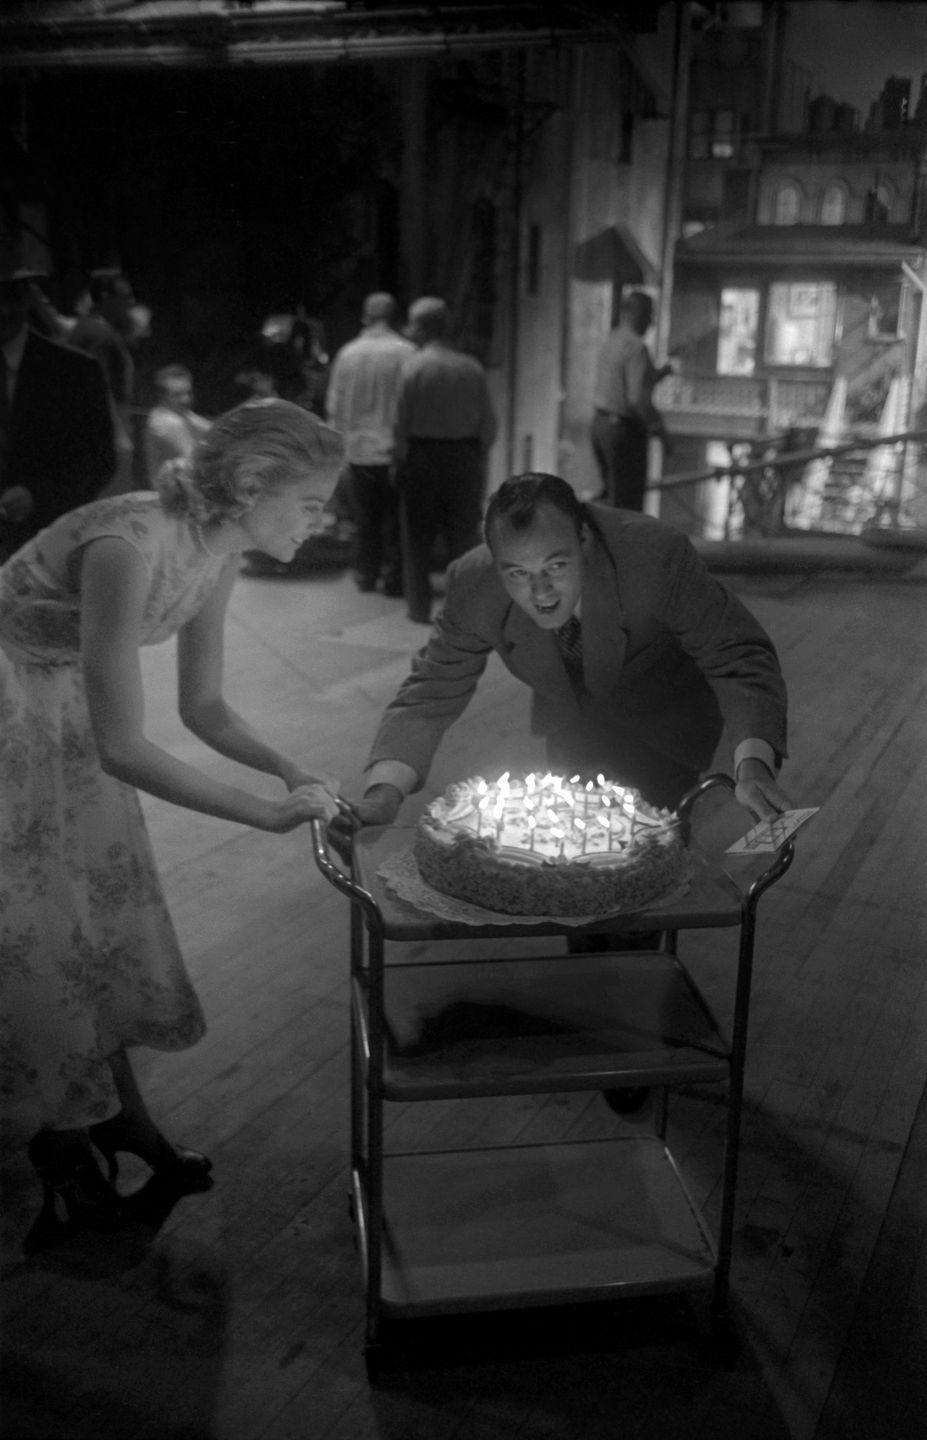 <p>The young film star is treated to a birthday celebration on the set of <em>Rear Window </em>in 1953. The actress was presented a cake on the Paramount lot in honor of her 24th birthday. </p>